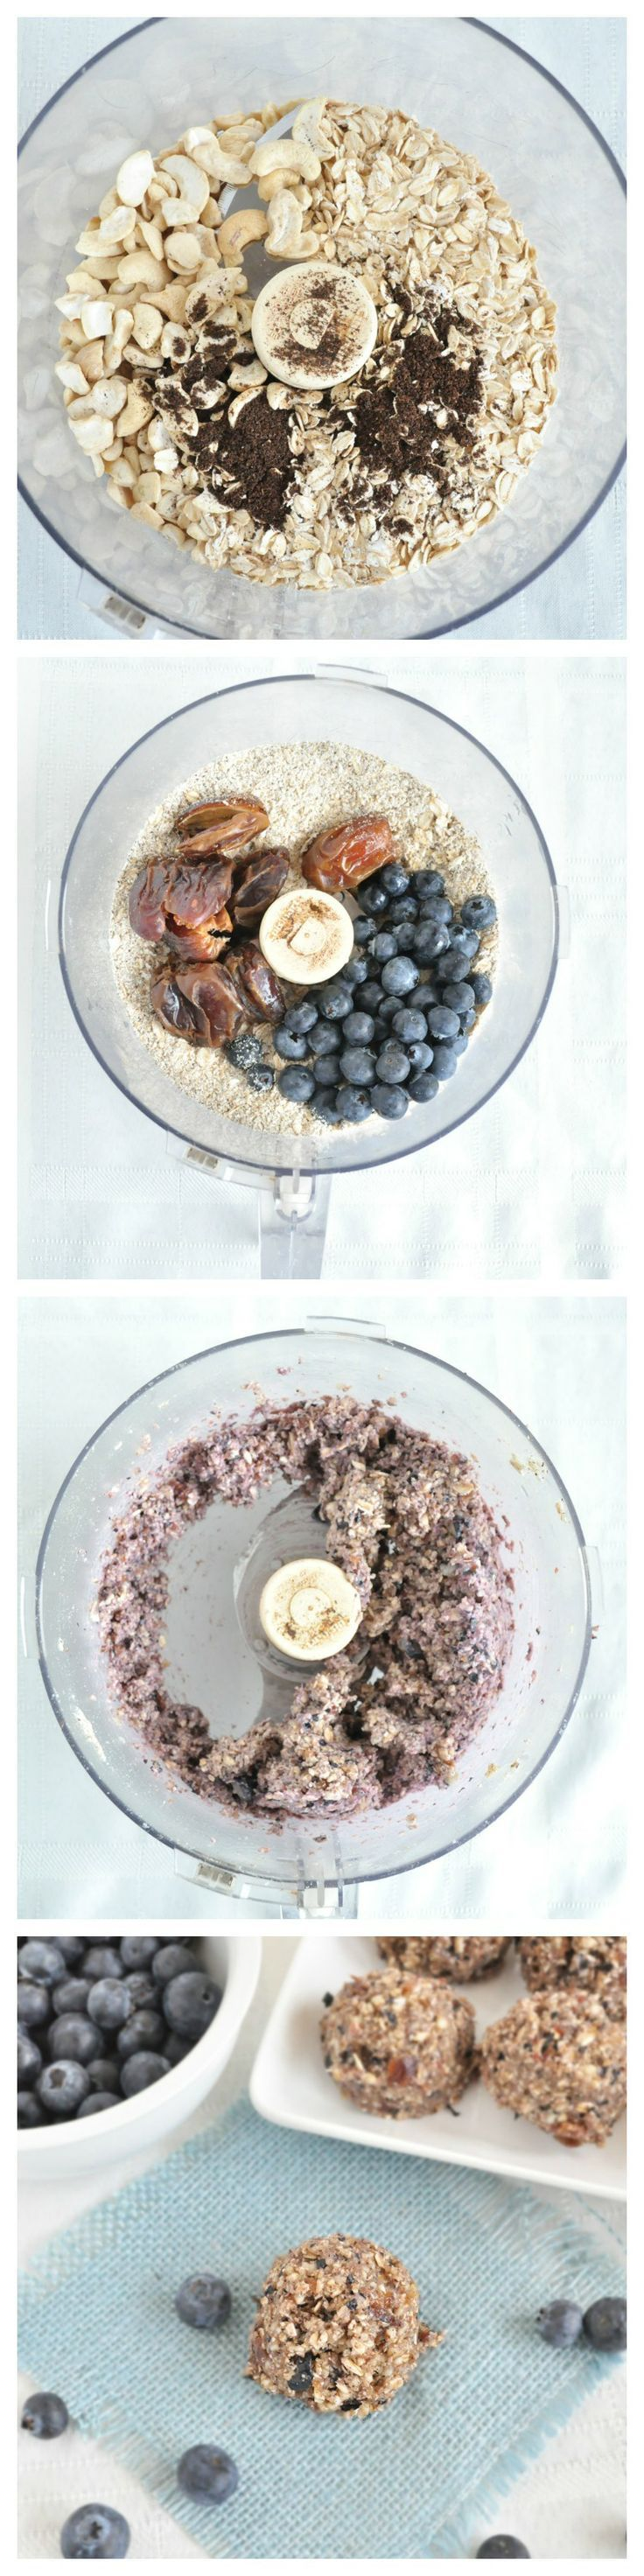 No Bake Blueberry Muffin Bites healthy enough for breakfast! No flour and no added sugars!